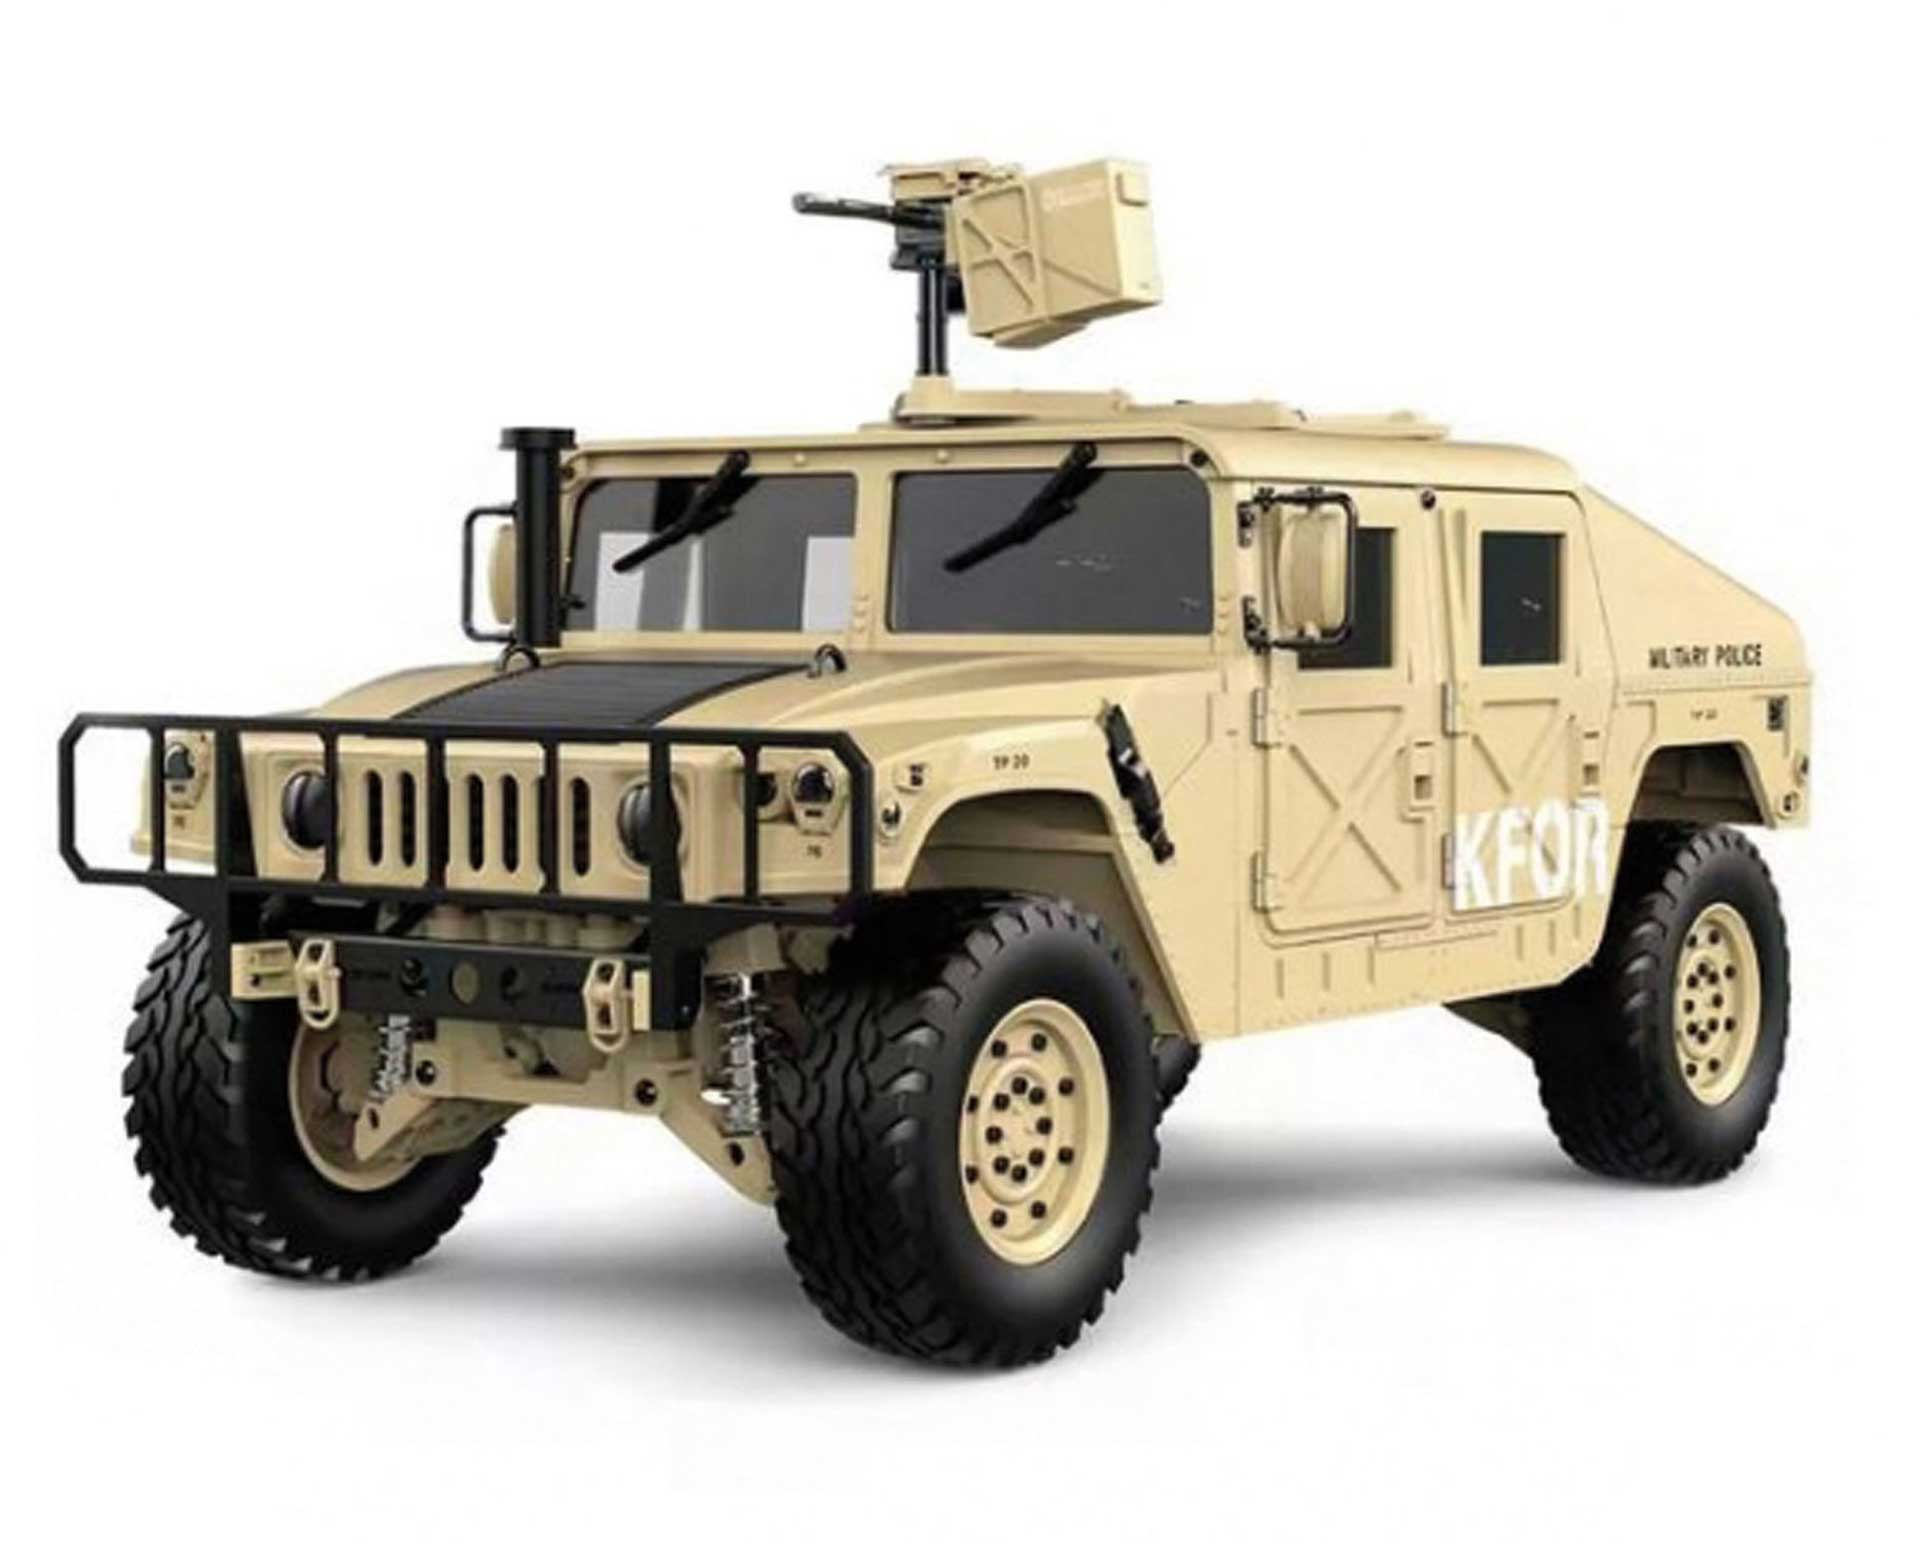 FM-ELECTRICS Military SUV with four-wheel drive 1/10 XL EP 4WD